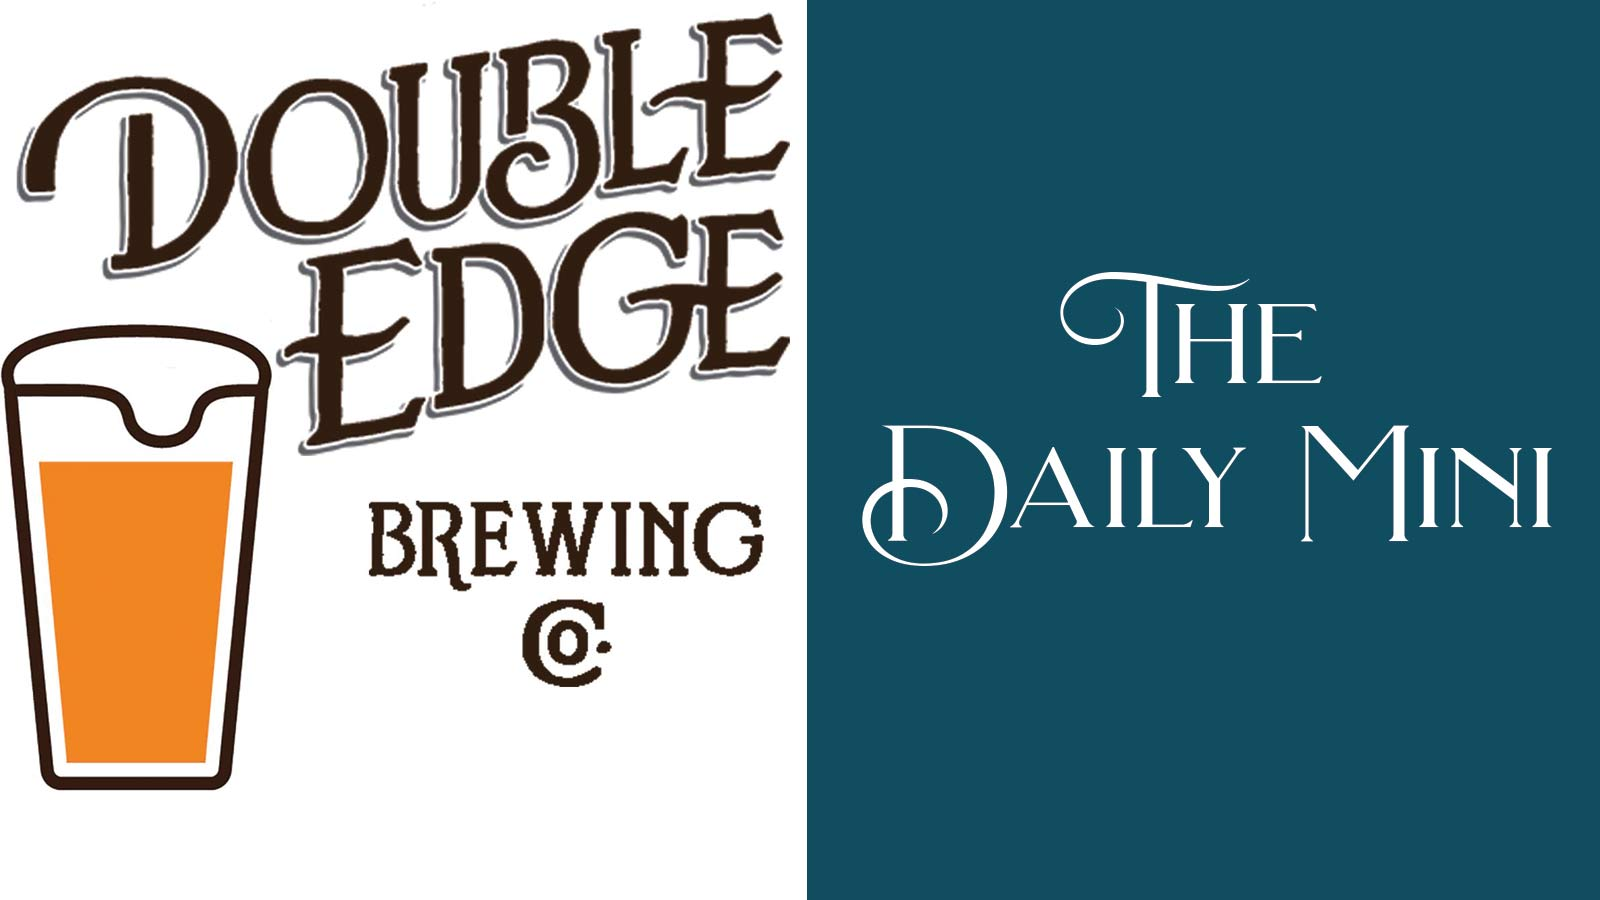 The Daily Mini announcement showing graphic of filled beer glass with Double Edge Brewing Co. logo.